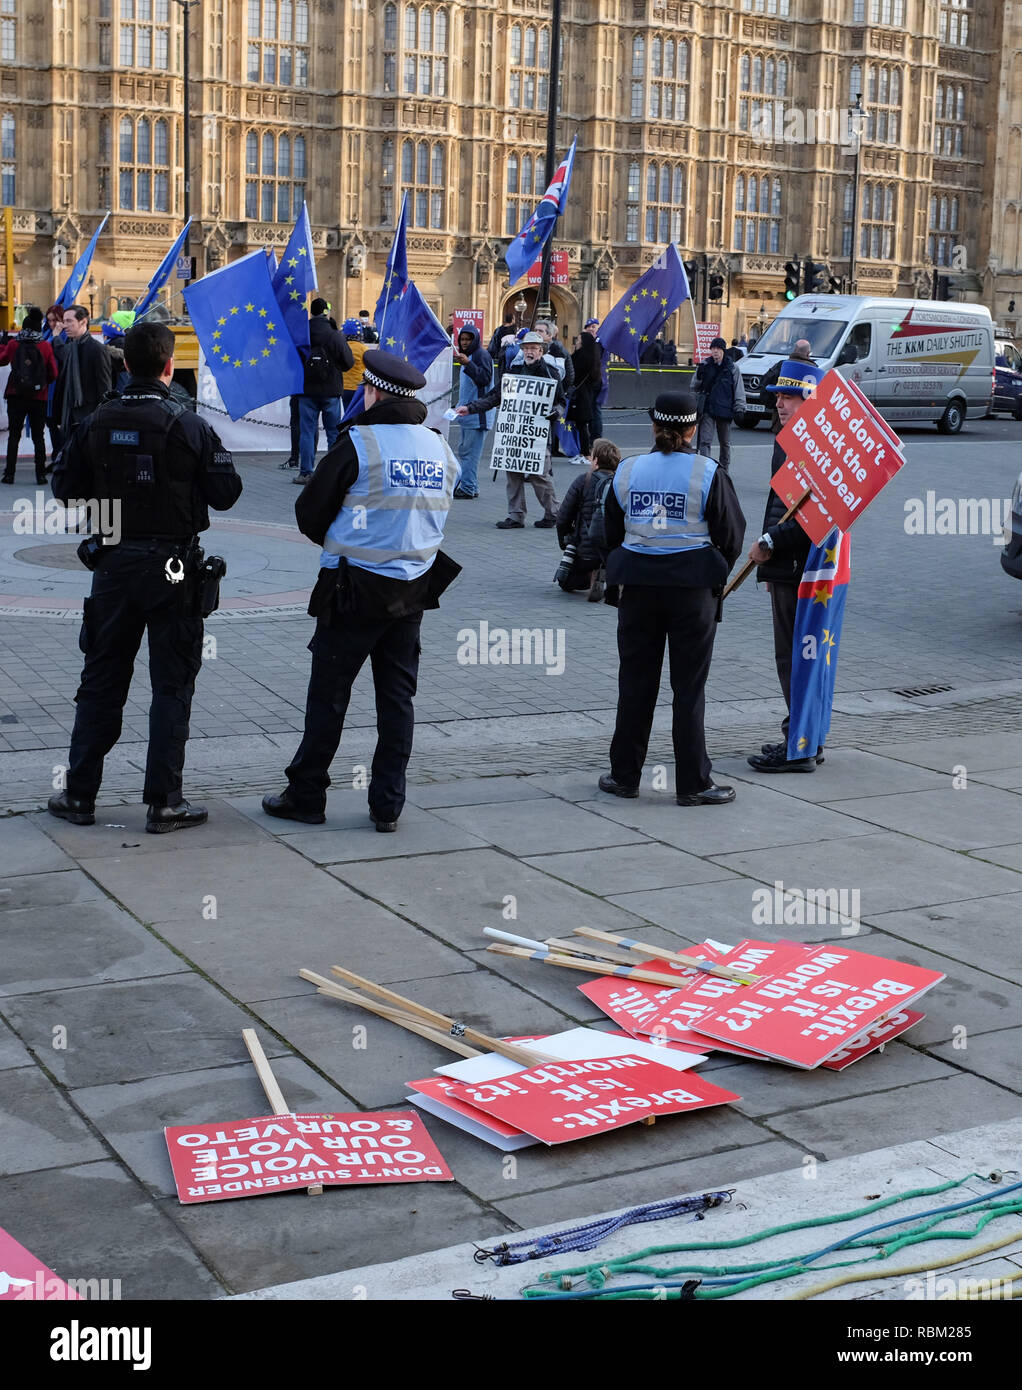 London, UK. 11th Jan, 2019. Anti Brexit campaigners outside the Houses of Parliament in London today as the debate continues on Prime Minister Theresa May's deal which is to be voted on next week . Credit: Simon Dack/Alamy Live News - Stock Image